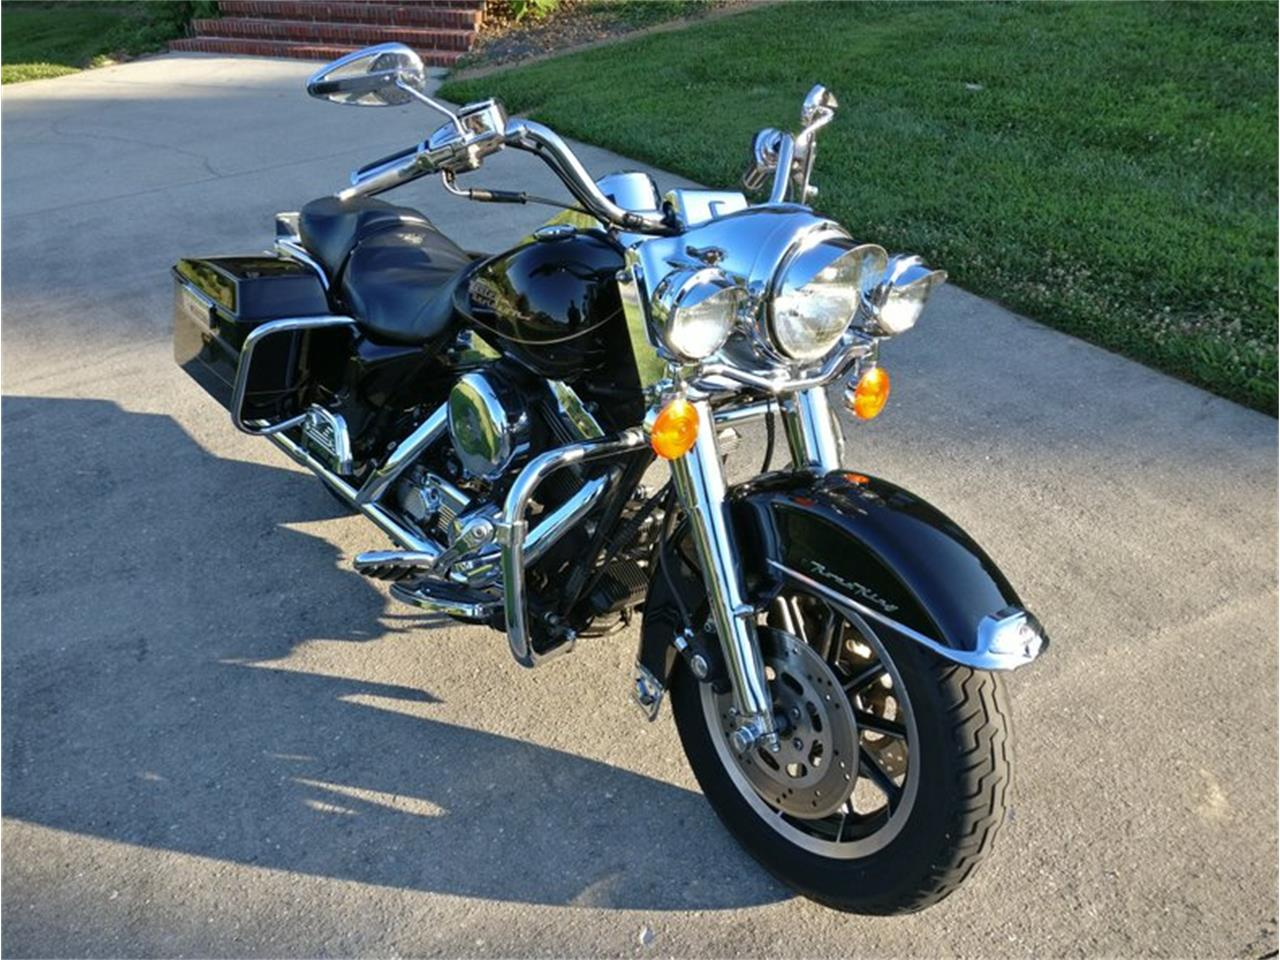 1998 Harley-Davidson Road King for sale in Cookeville, TN – photo 3